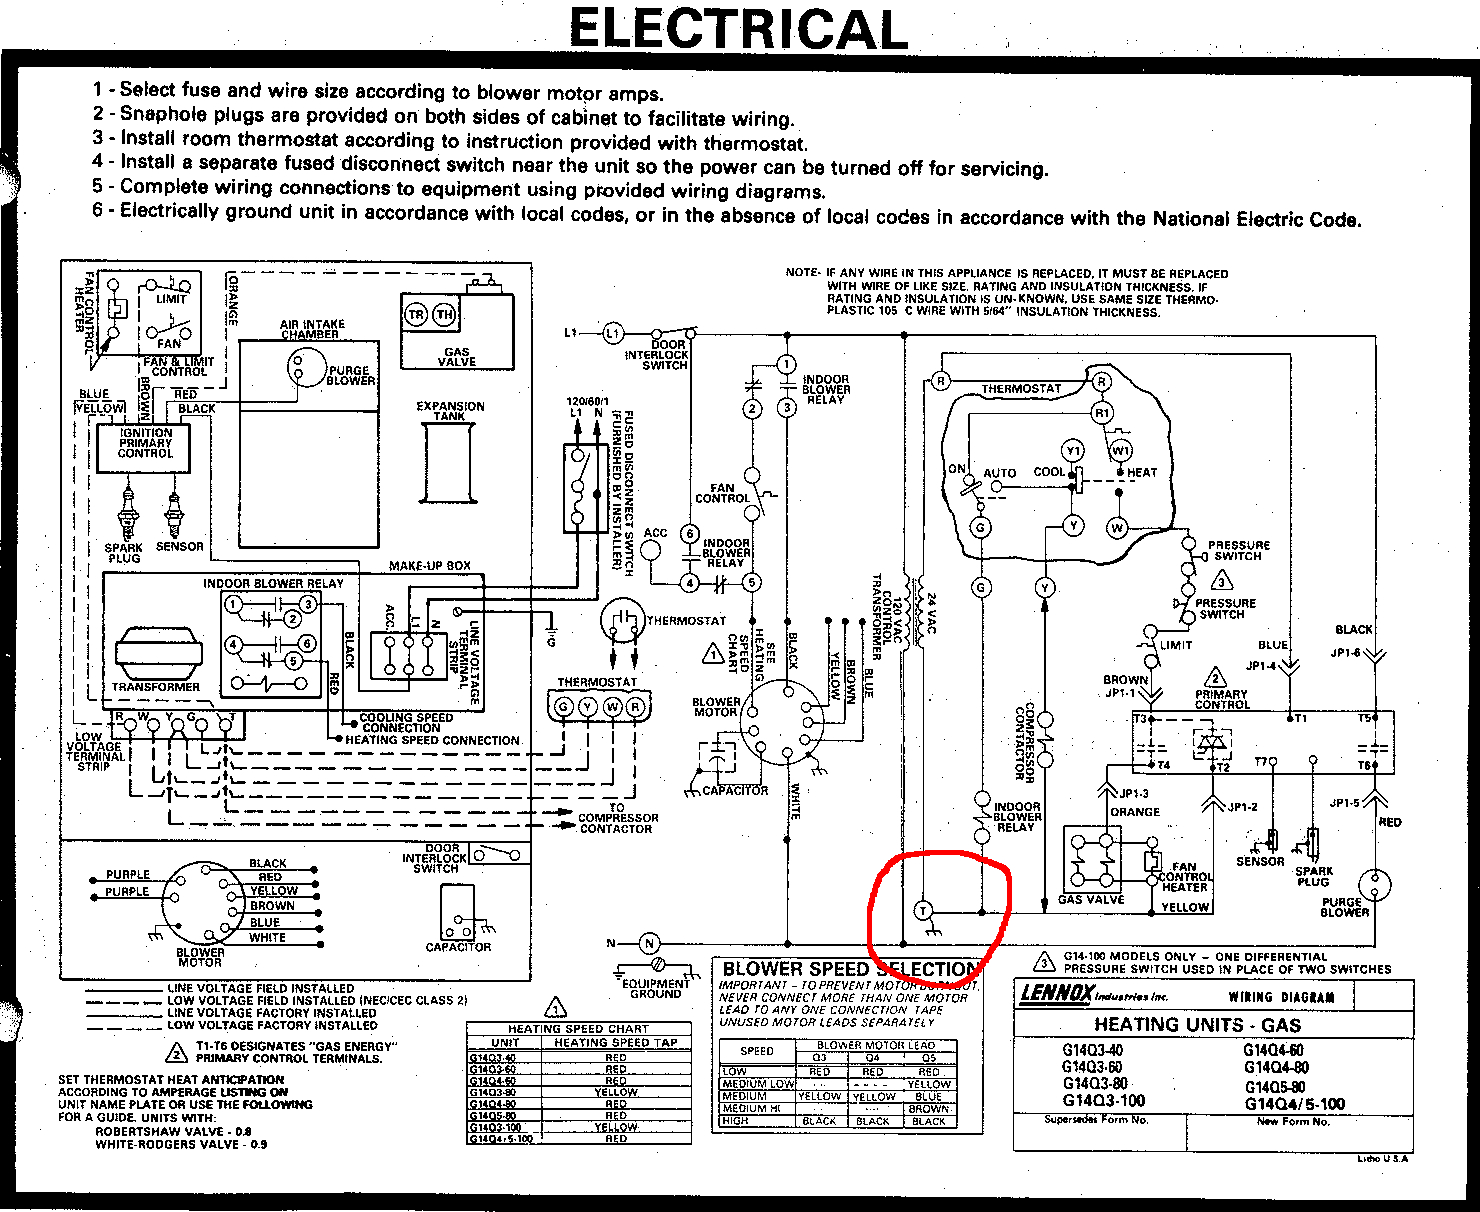 Can I Use The T Terminal In My Furnace As The C For A Wifi - Gas Furnace Thermostat Wiring Diagram